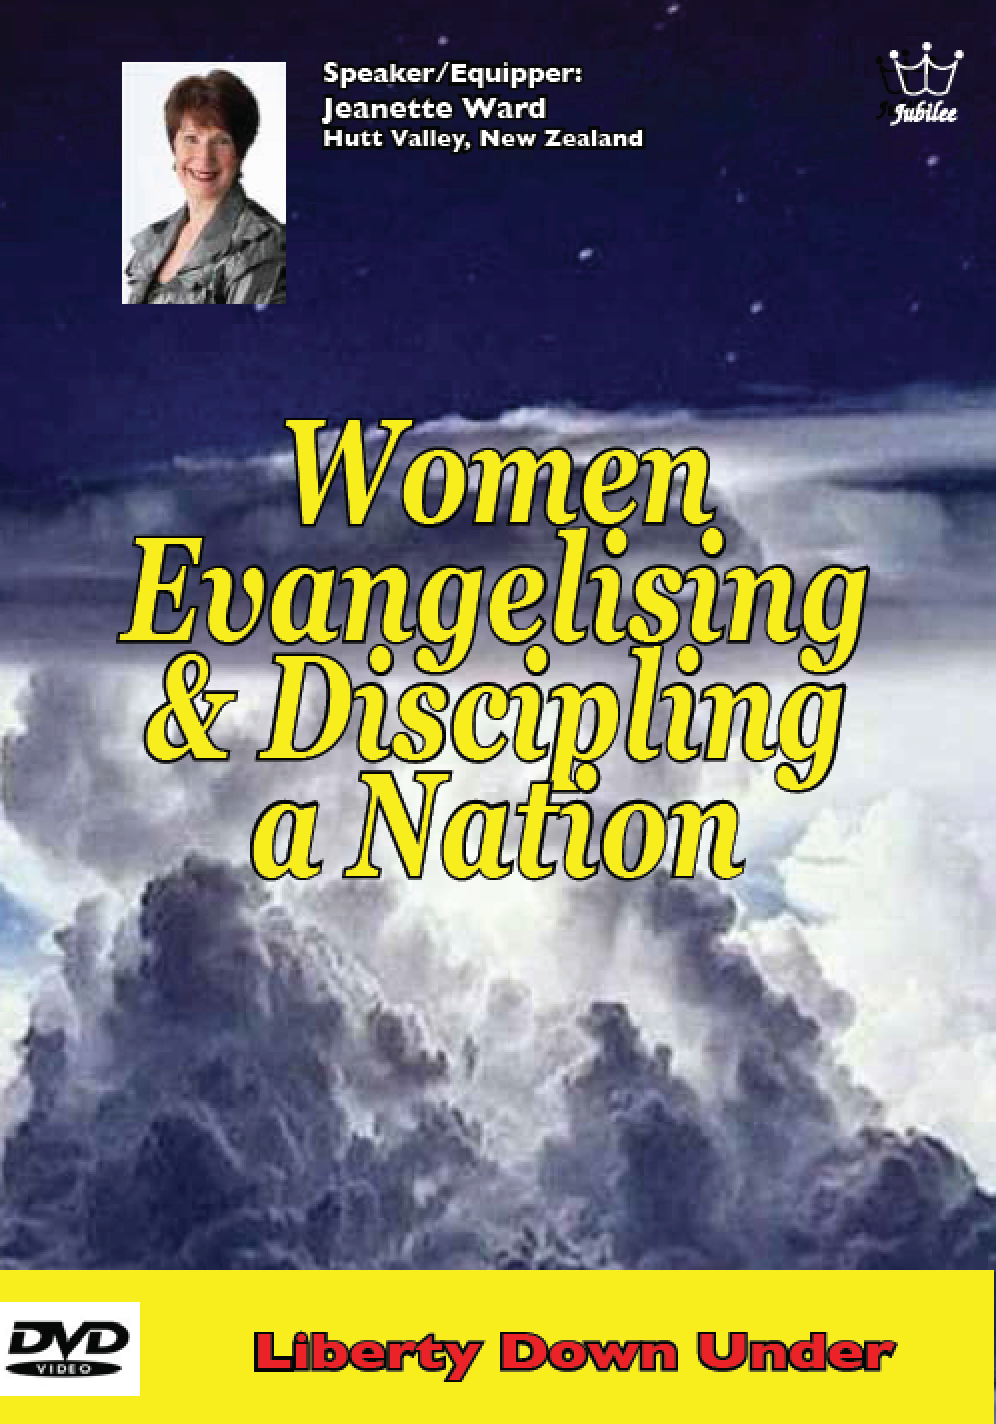 Women Evangelising & Discipling a nation, by Jeanette Ward, DVD # DWEW